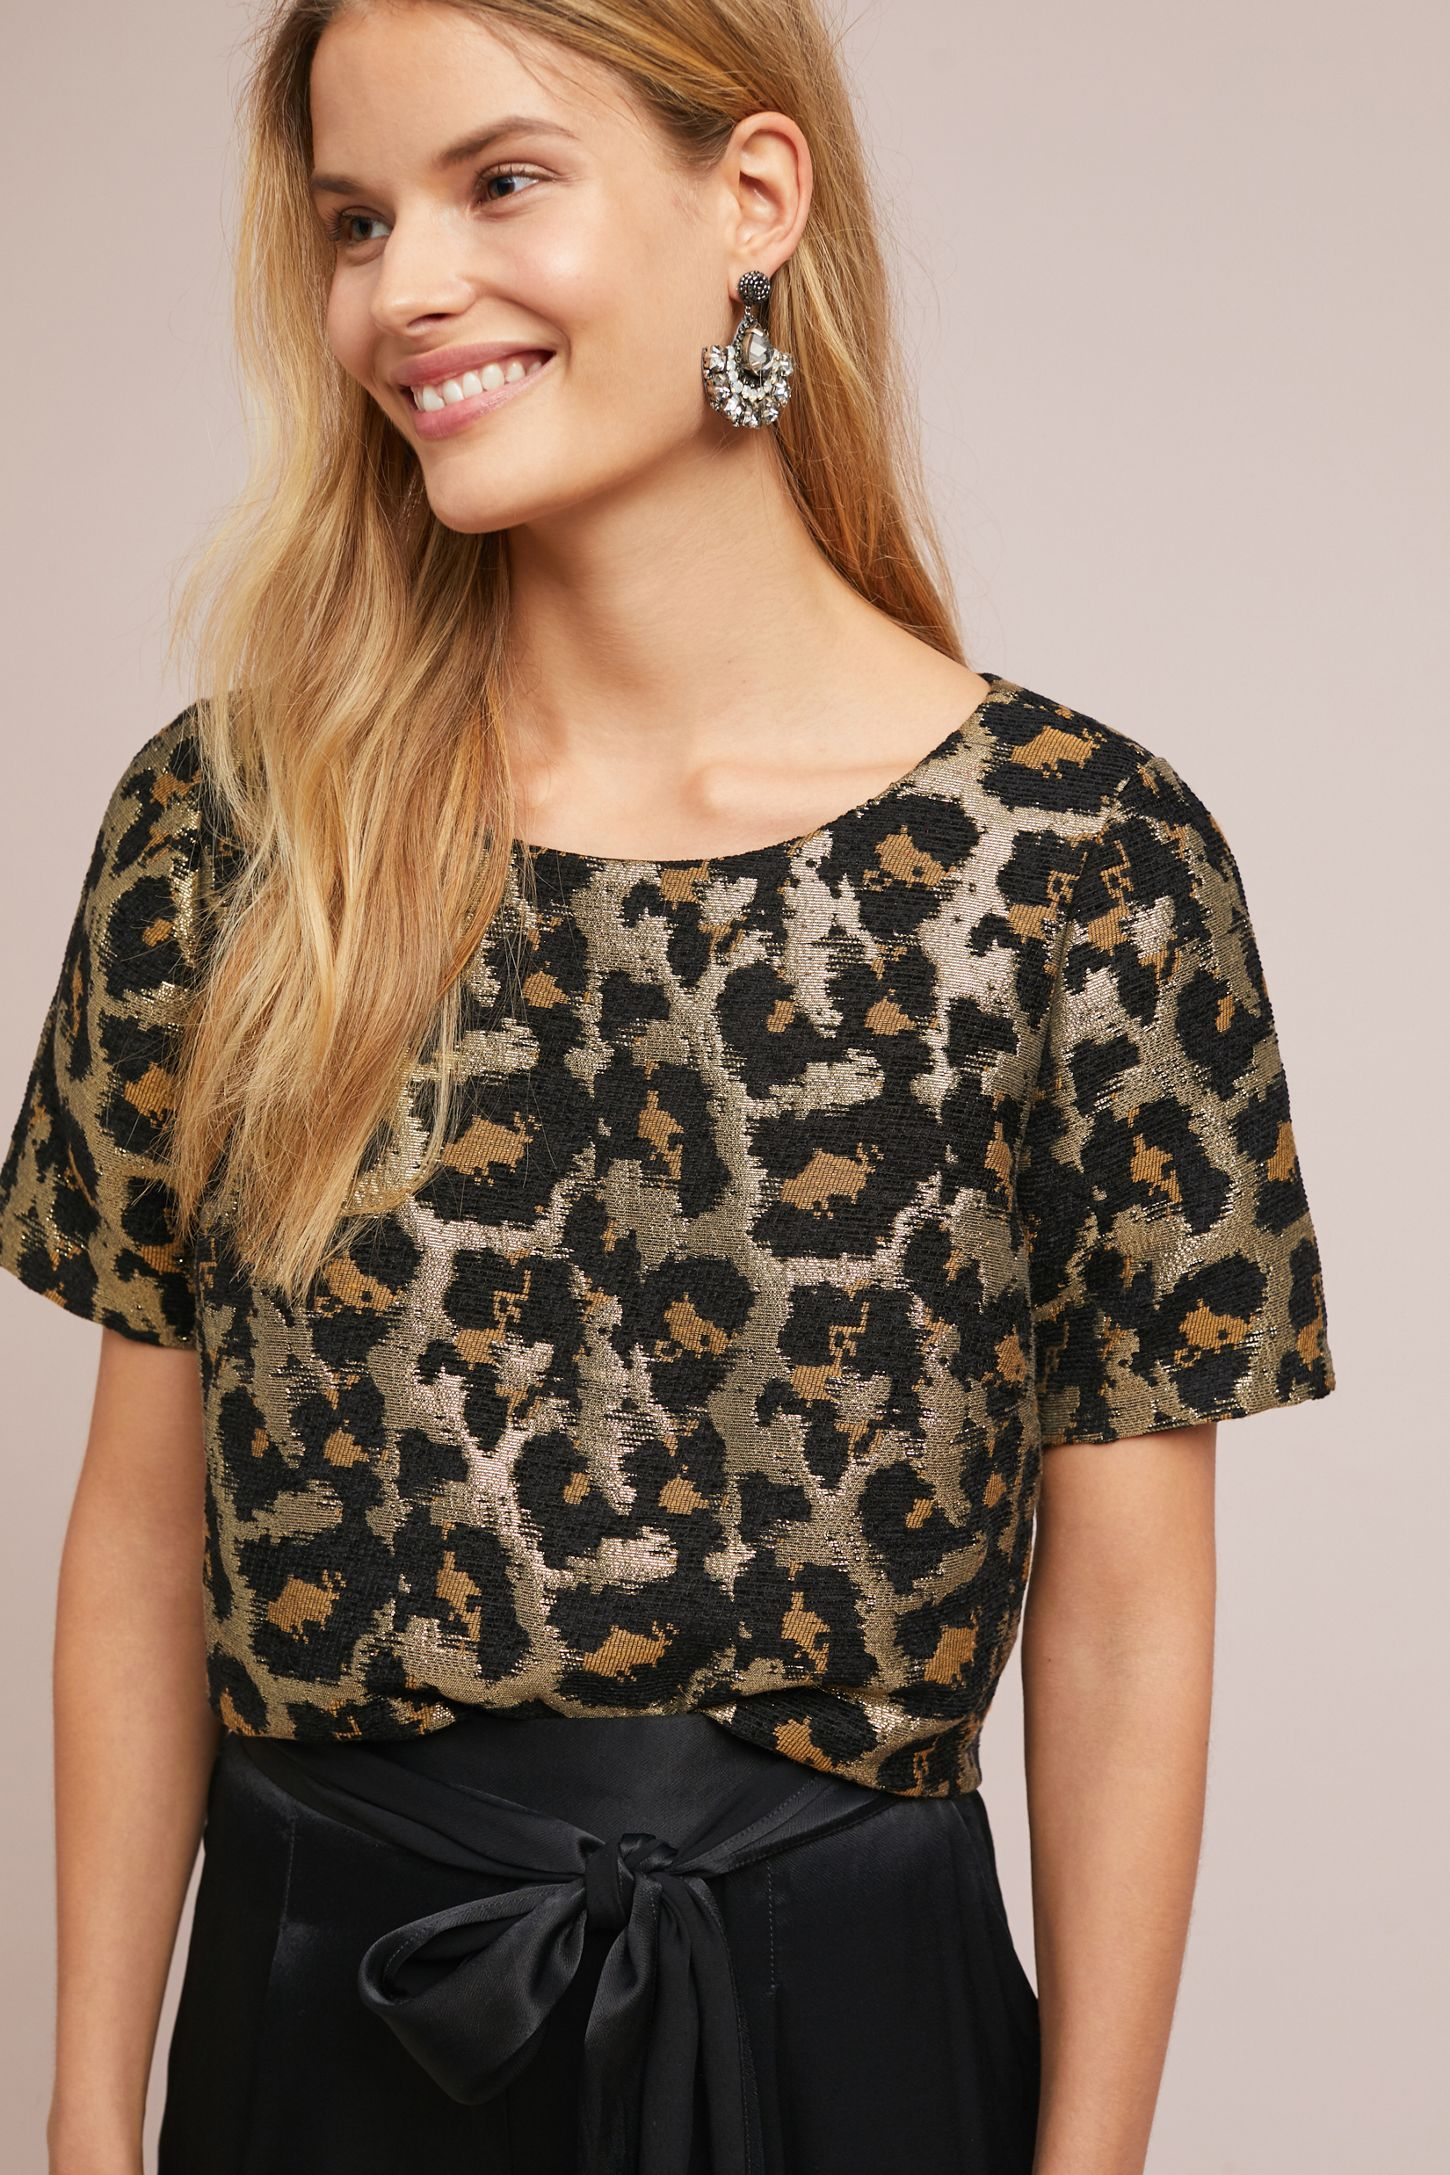 e870593c57 Leopard Top | My Style | Leopard top, Tops, Leopard outfits